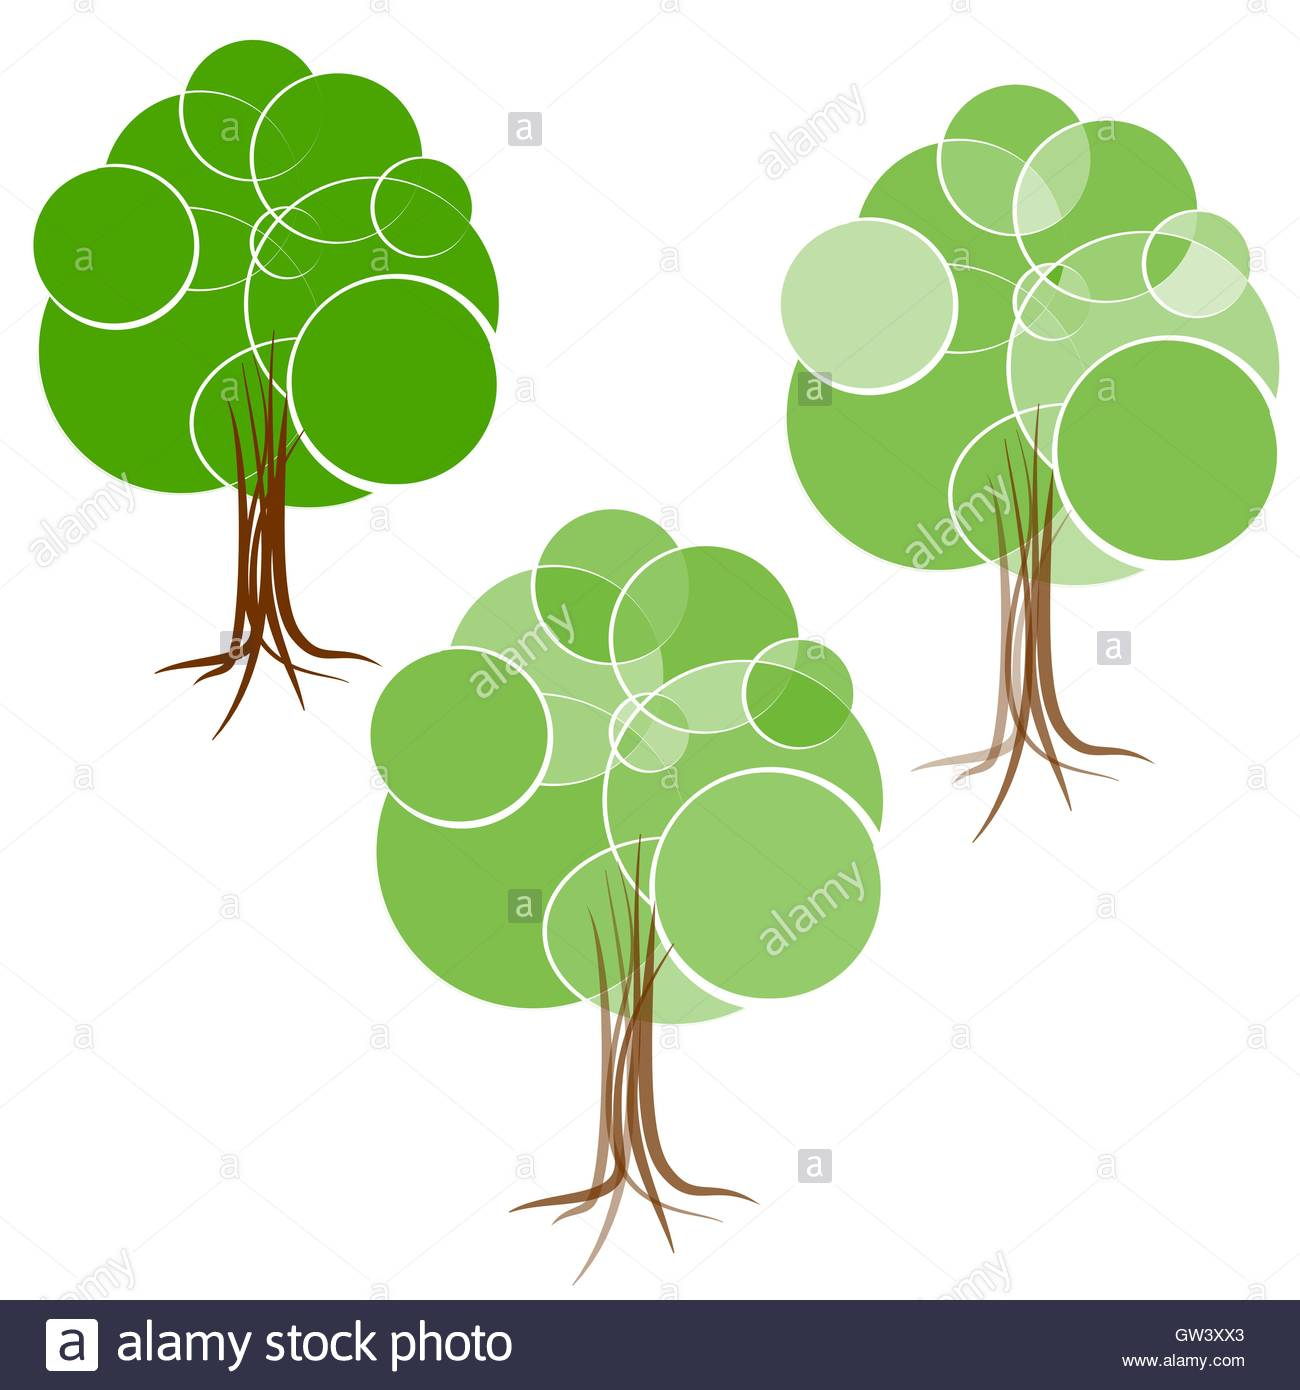 Cartoon Green Summer Tree With A Crown Of Circles Different Stock.